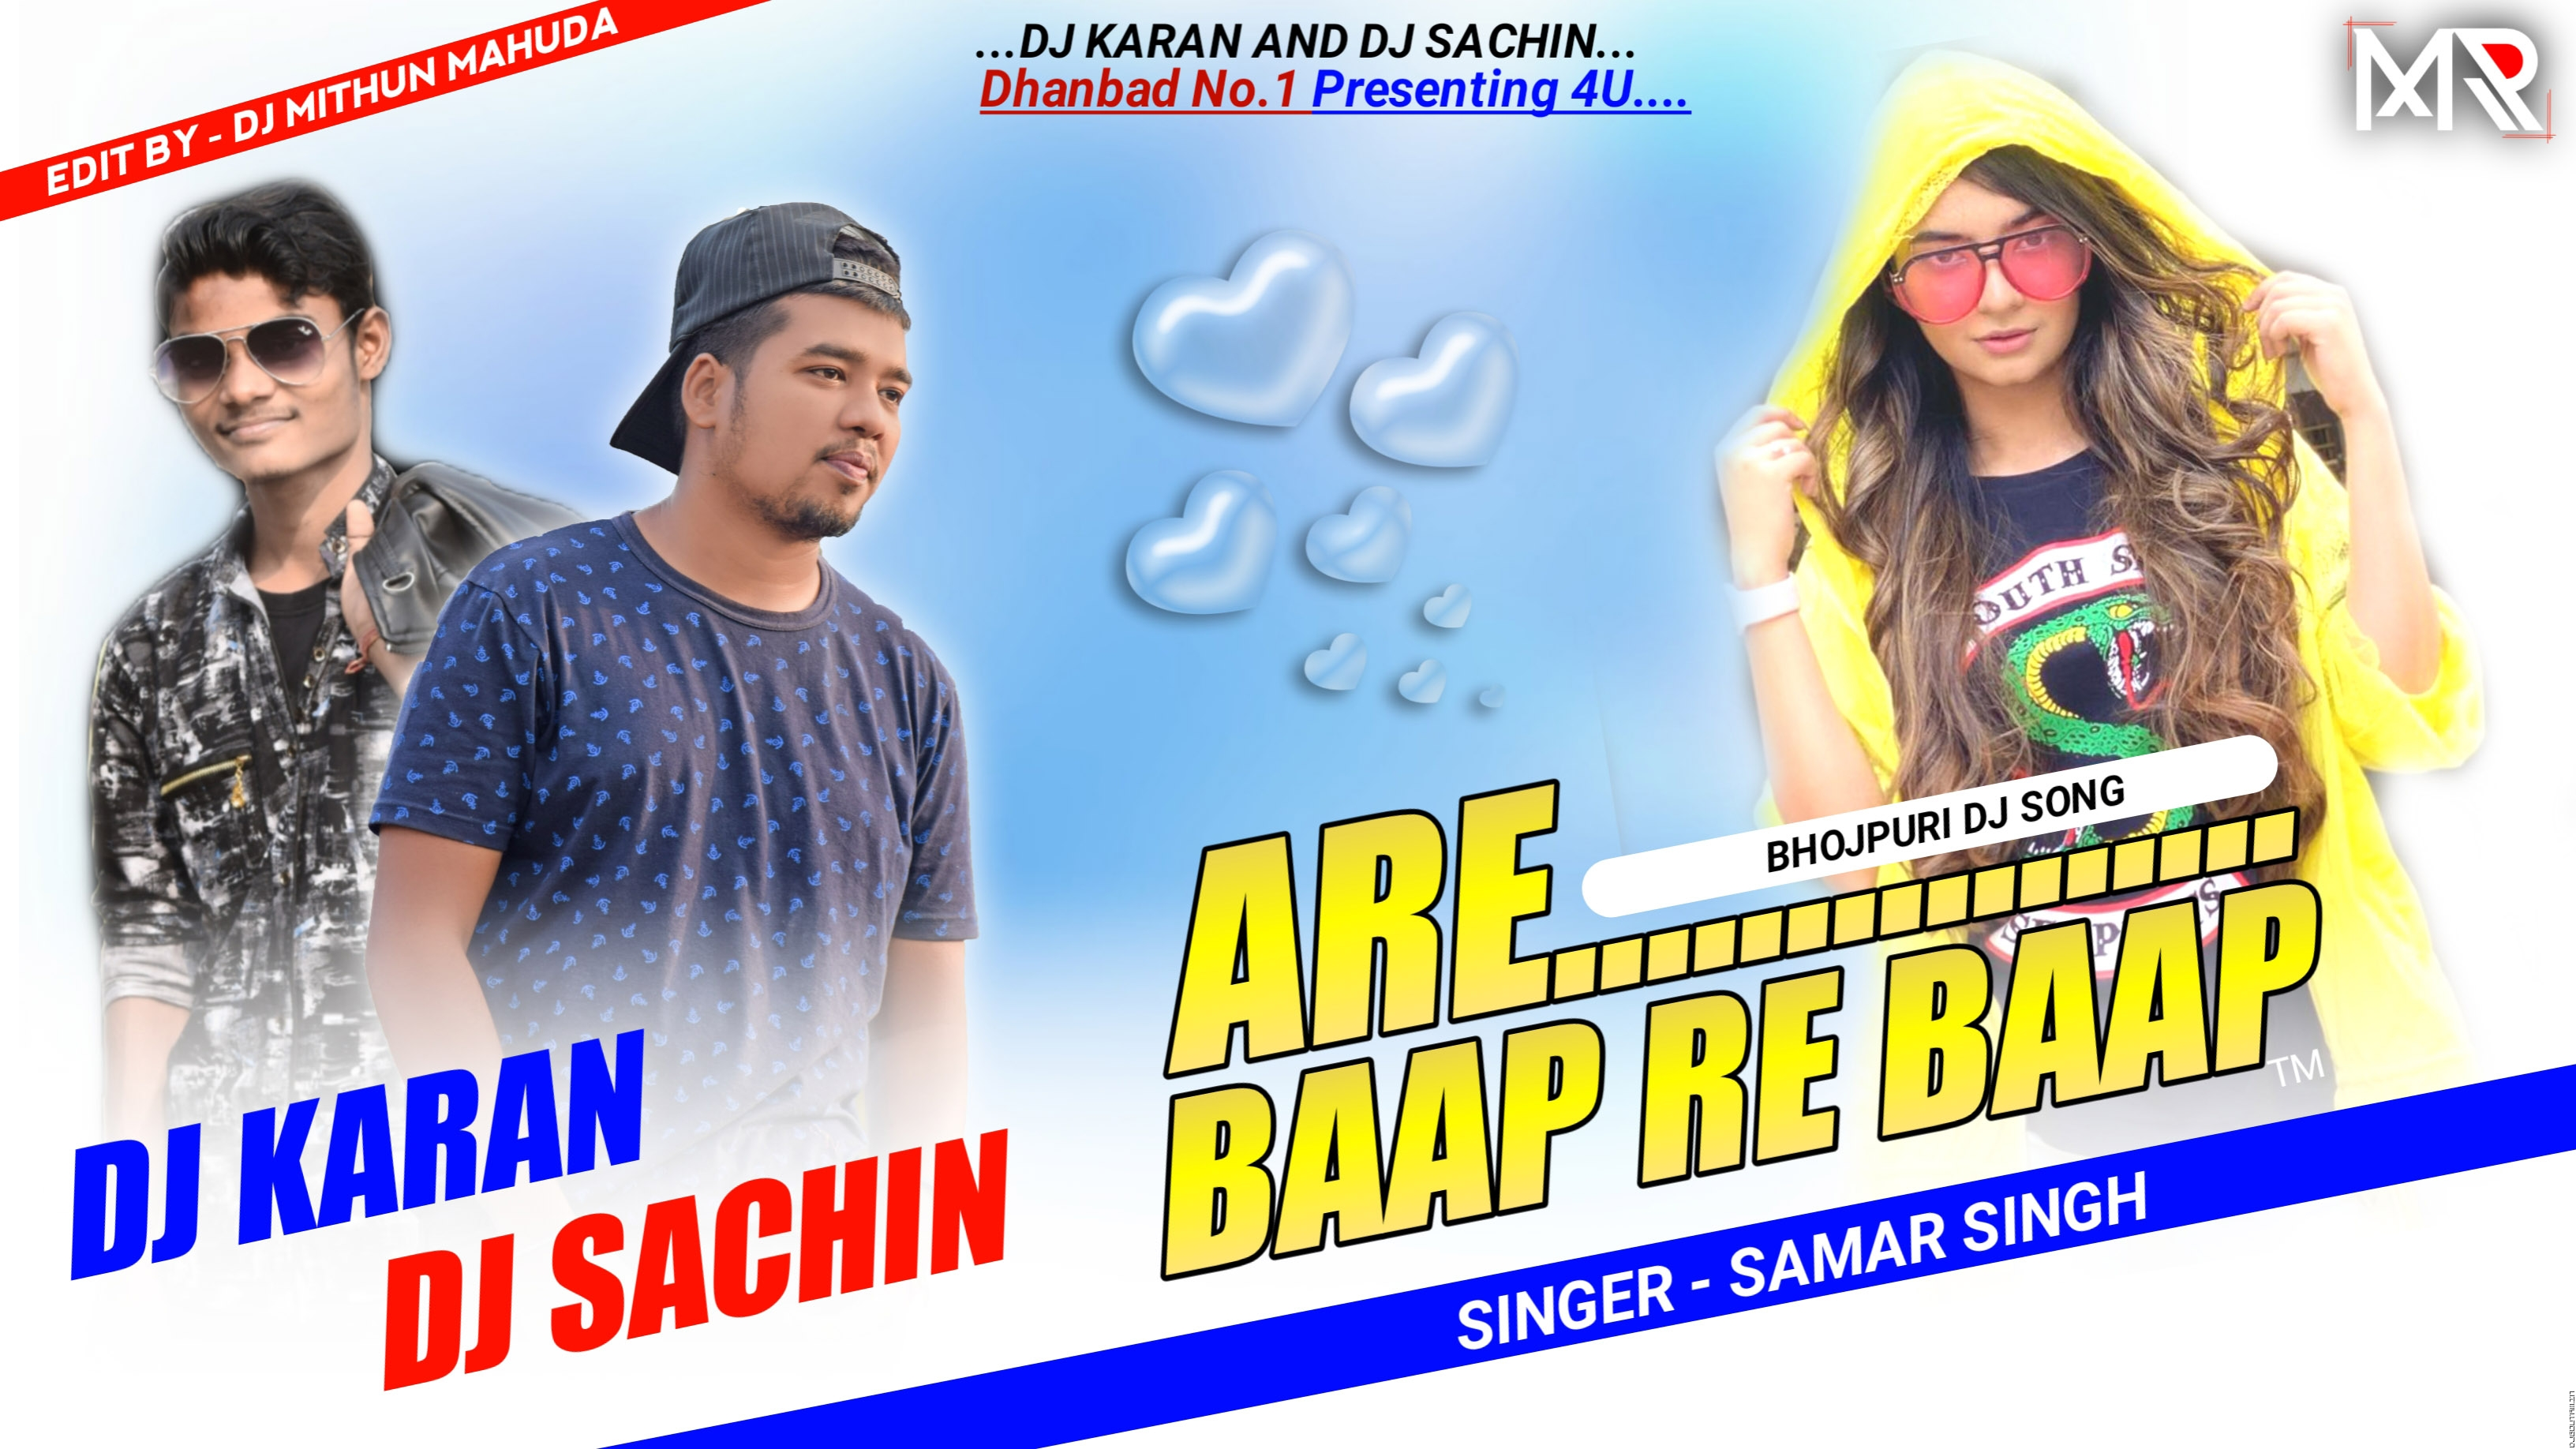 Are Baap Re Baap--New Hit Bhojpuri Song 2020--Dj Sachin x Dj Karan Dhanbad.mp3